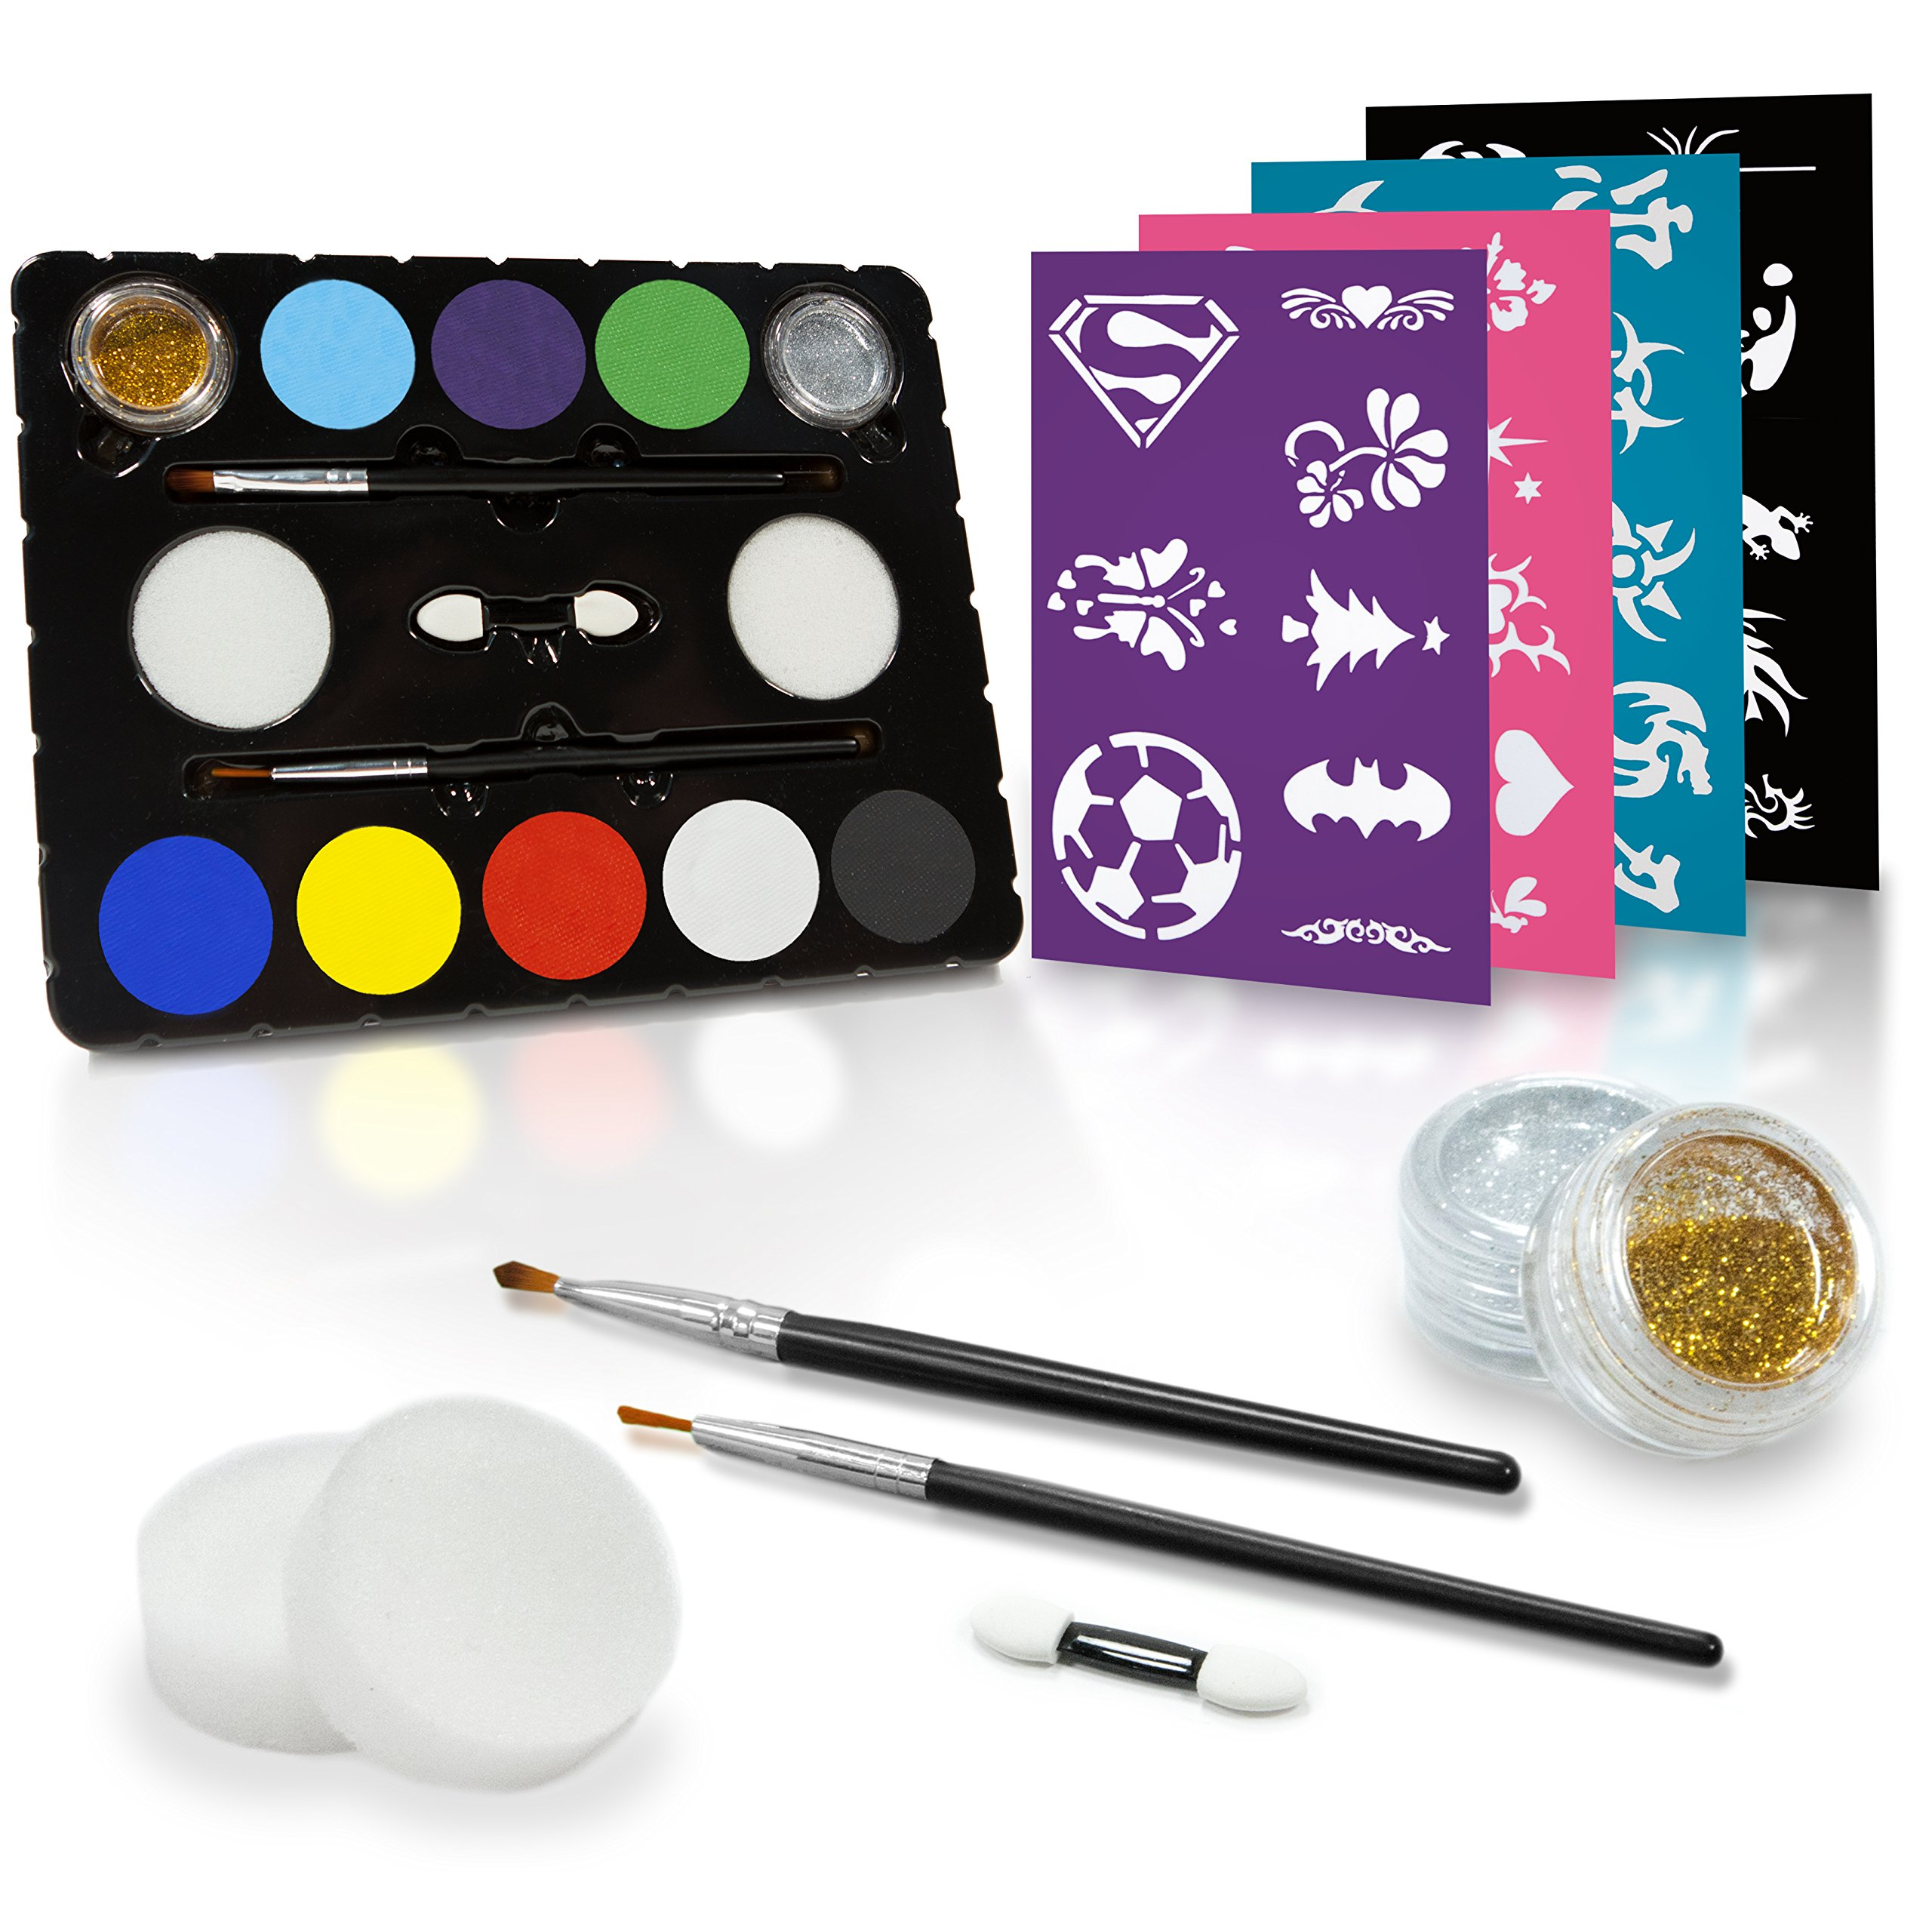 Create-A-Face Painting Set + Stencils (Black Tie Edition, 47-Piece) Brushes, Glitter & Applicators Included - 100% Safe, Water Activated - Face & Body Makeup For Parties by Create A Face